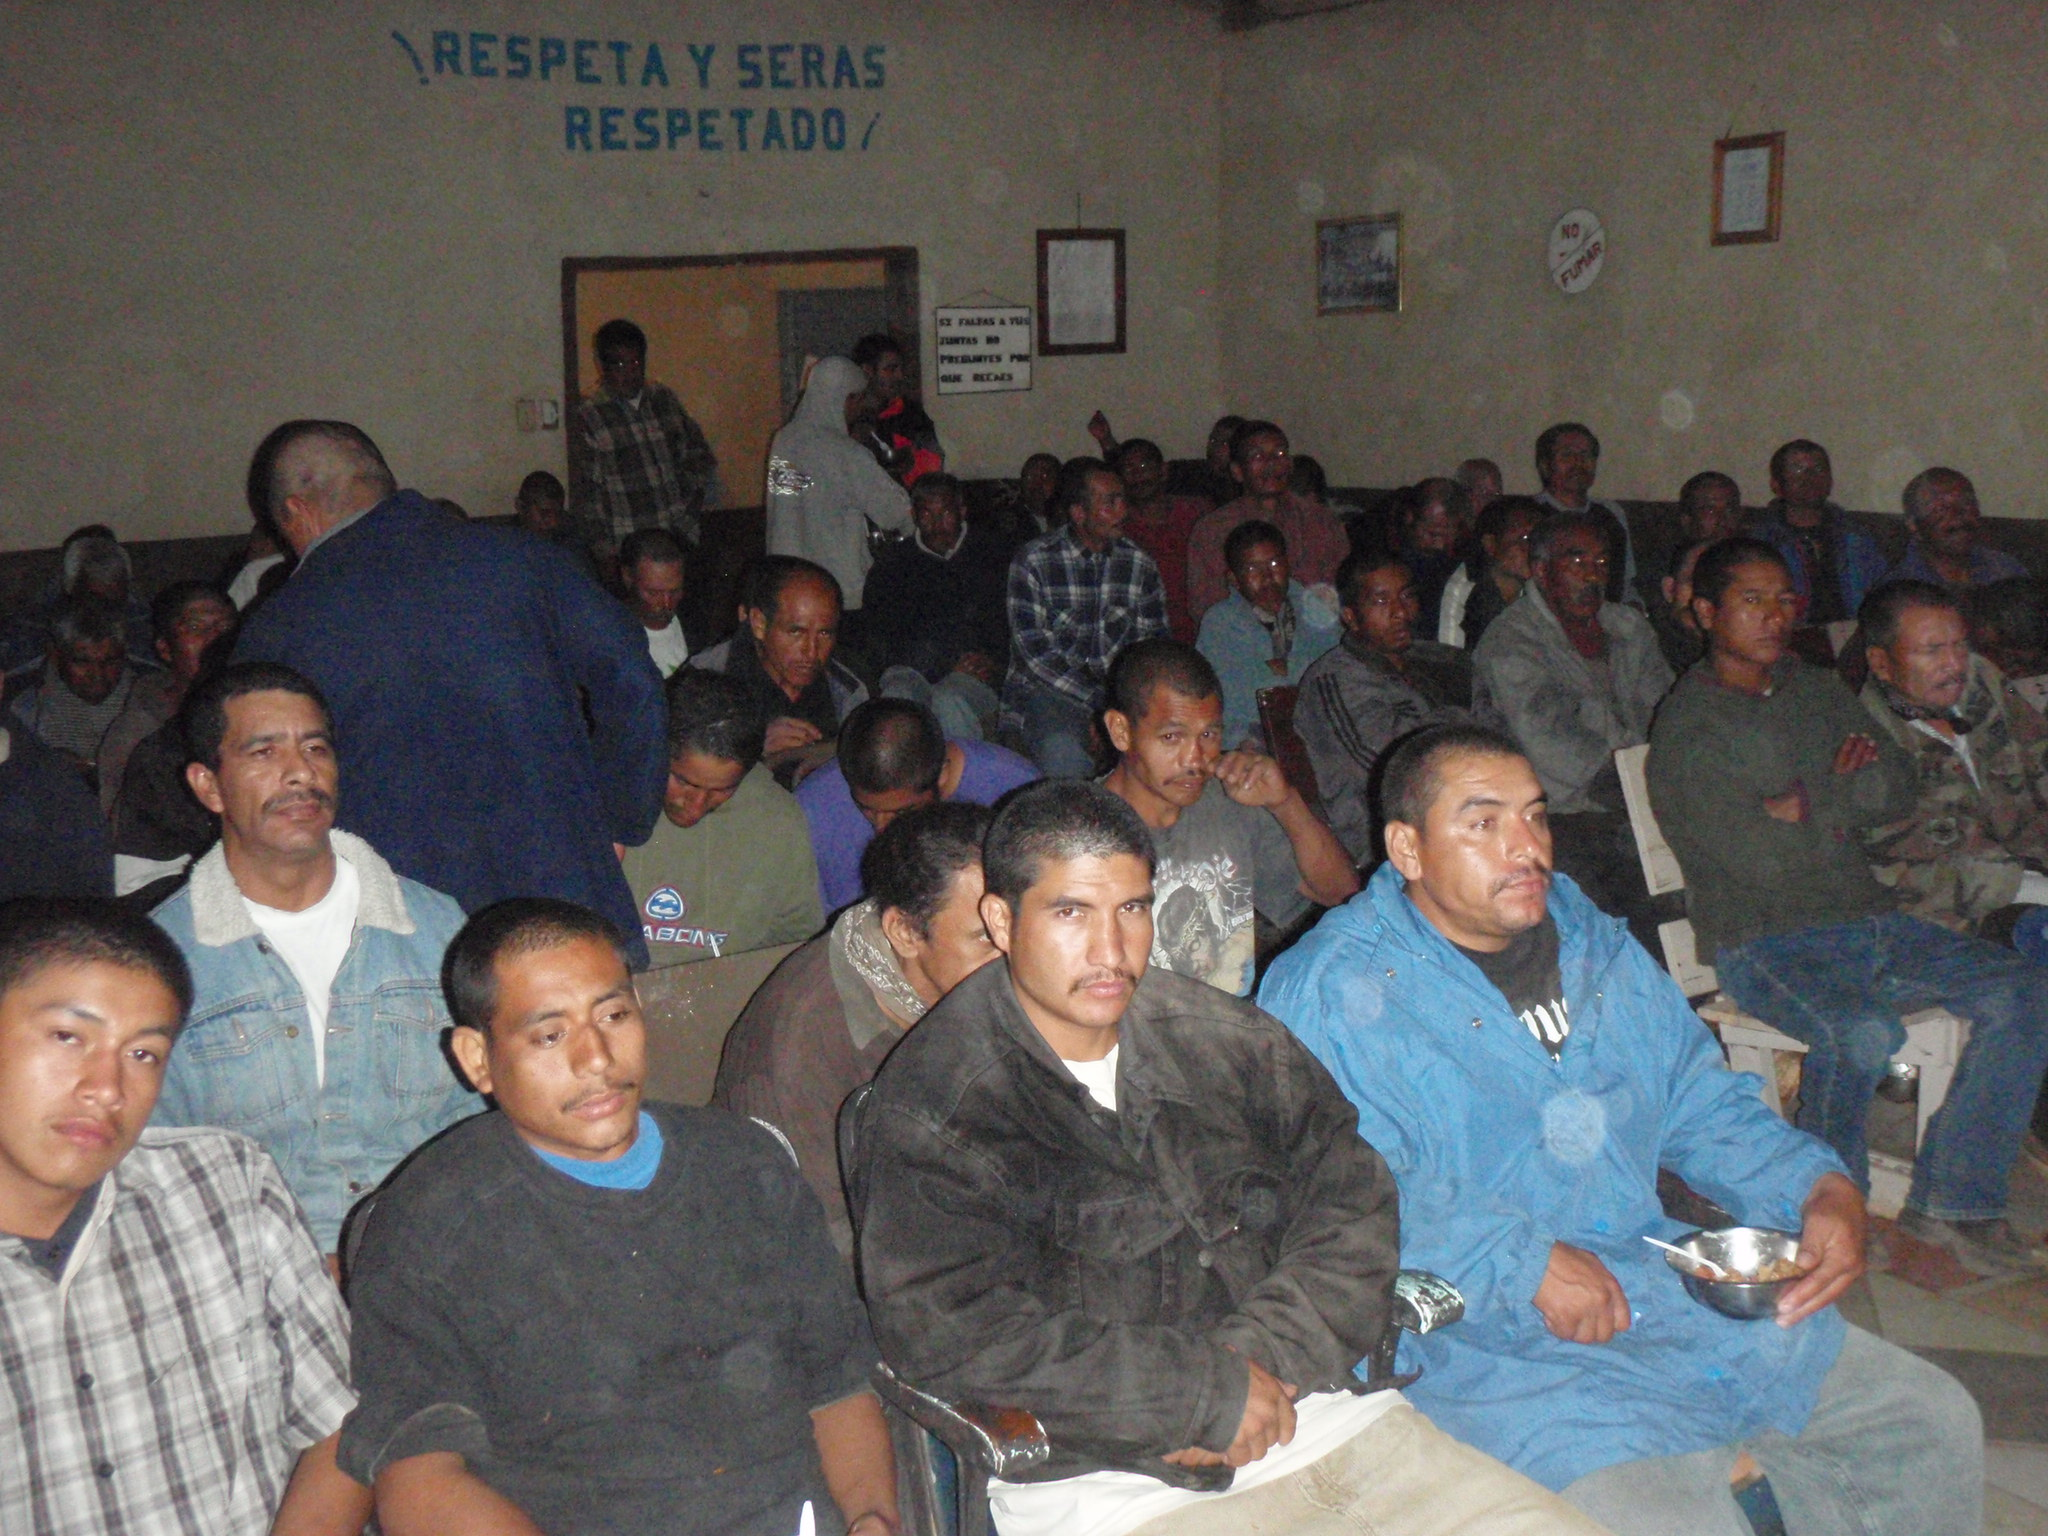 Men at Colonet drug rehab station during a Christian DVD concert showing